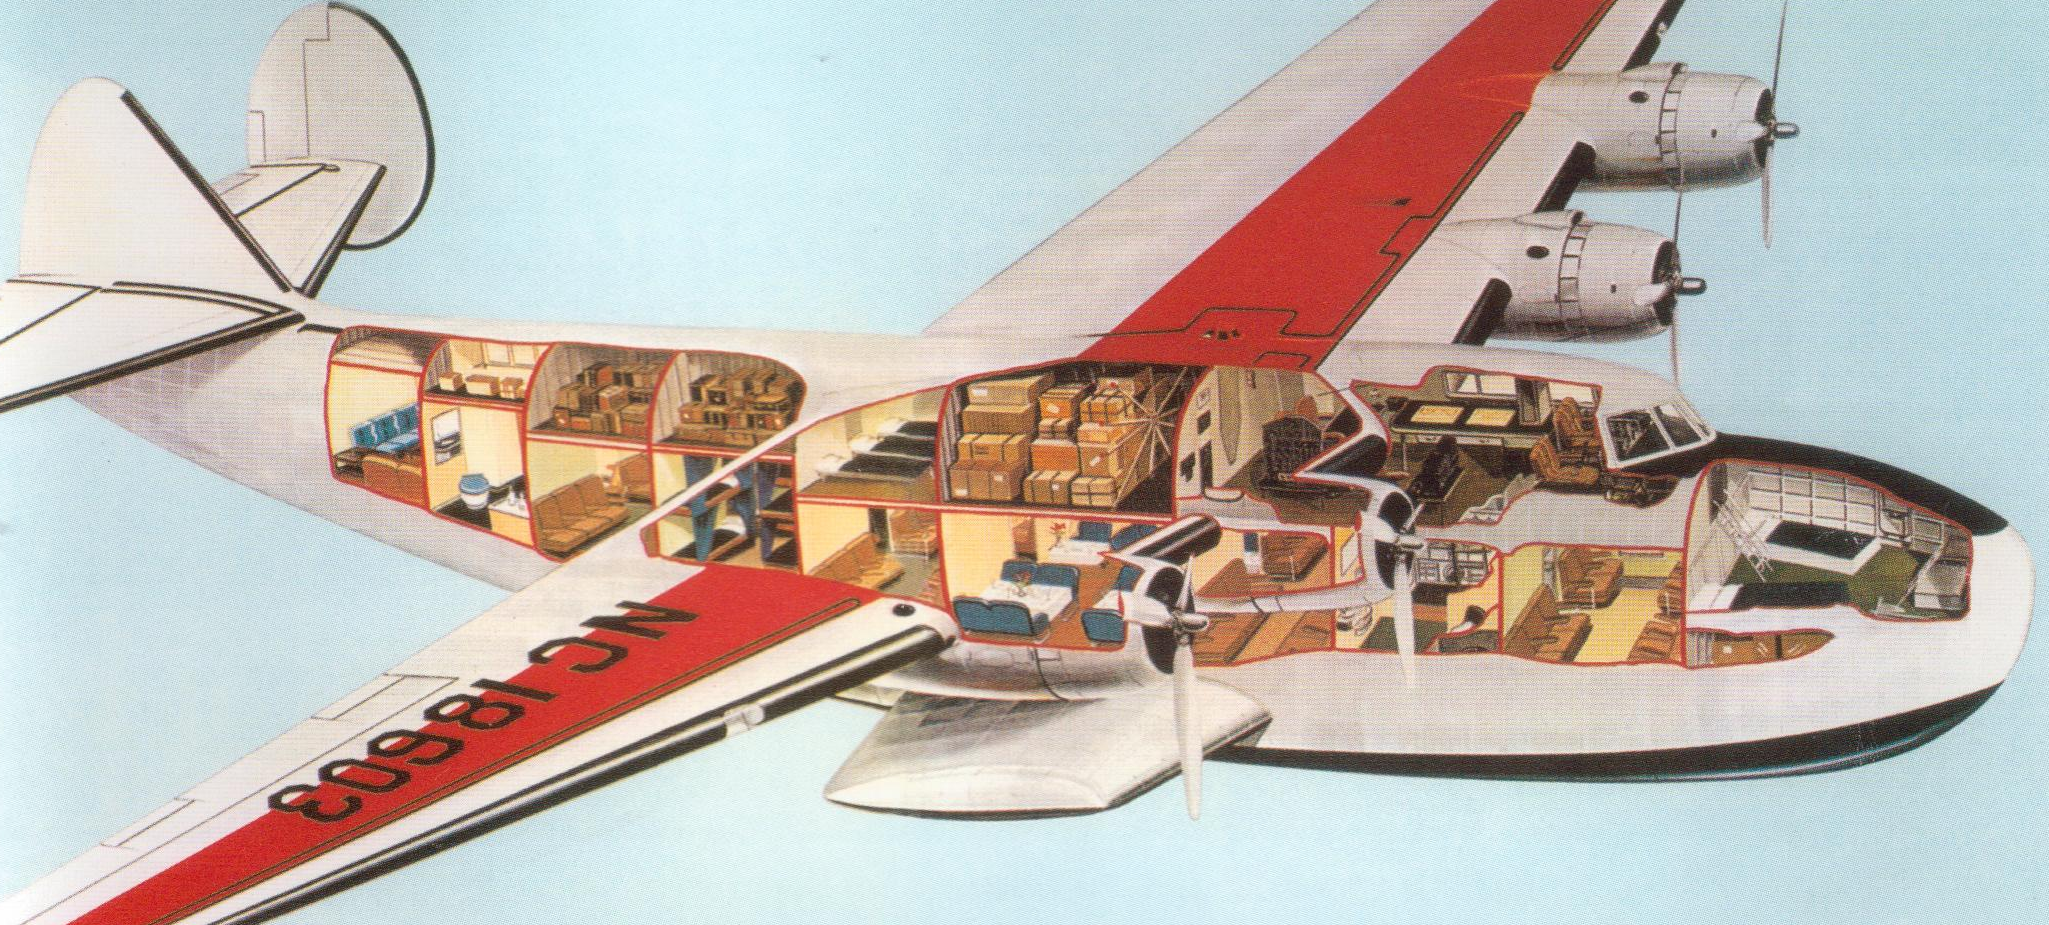 PanAm Yankee Clipper Cutaway Drawing